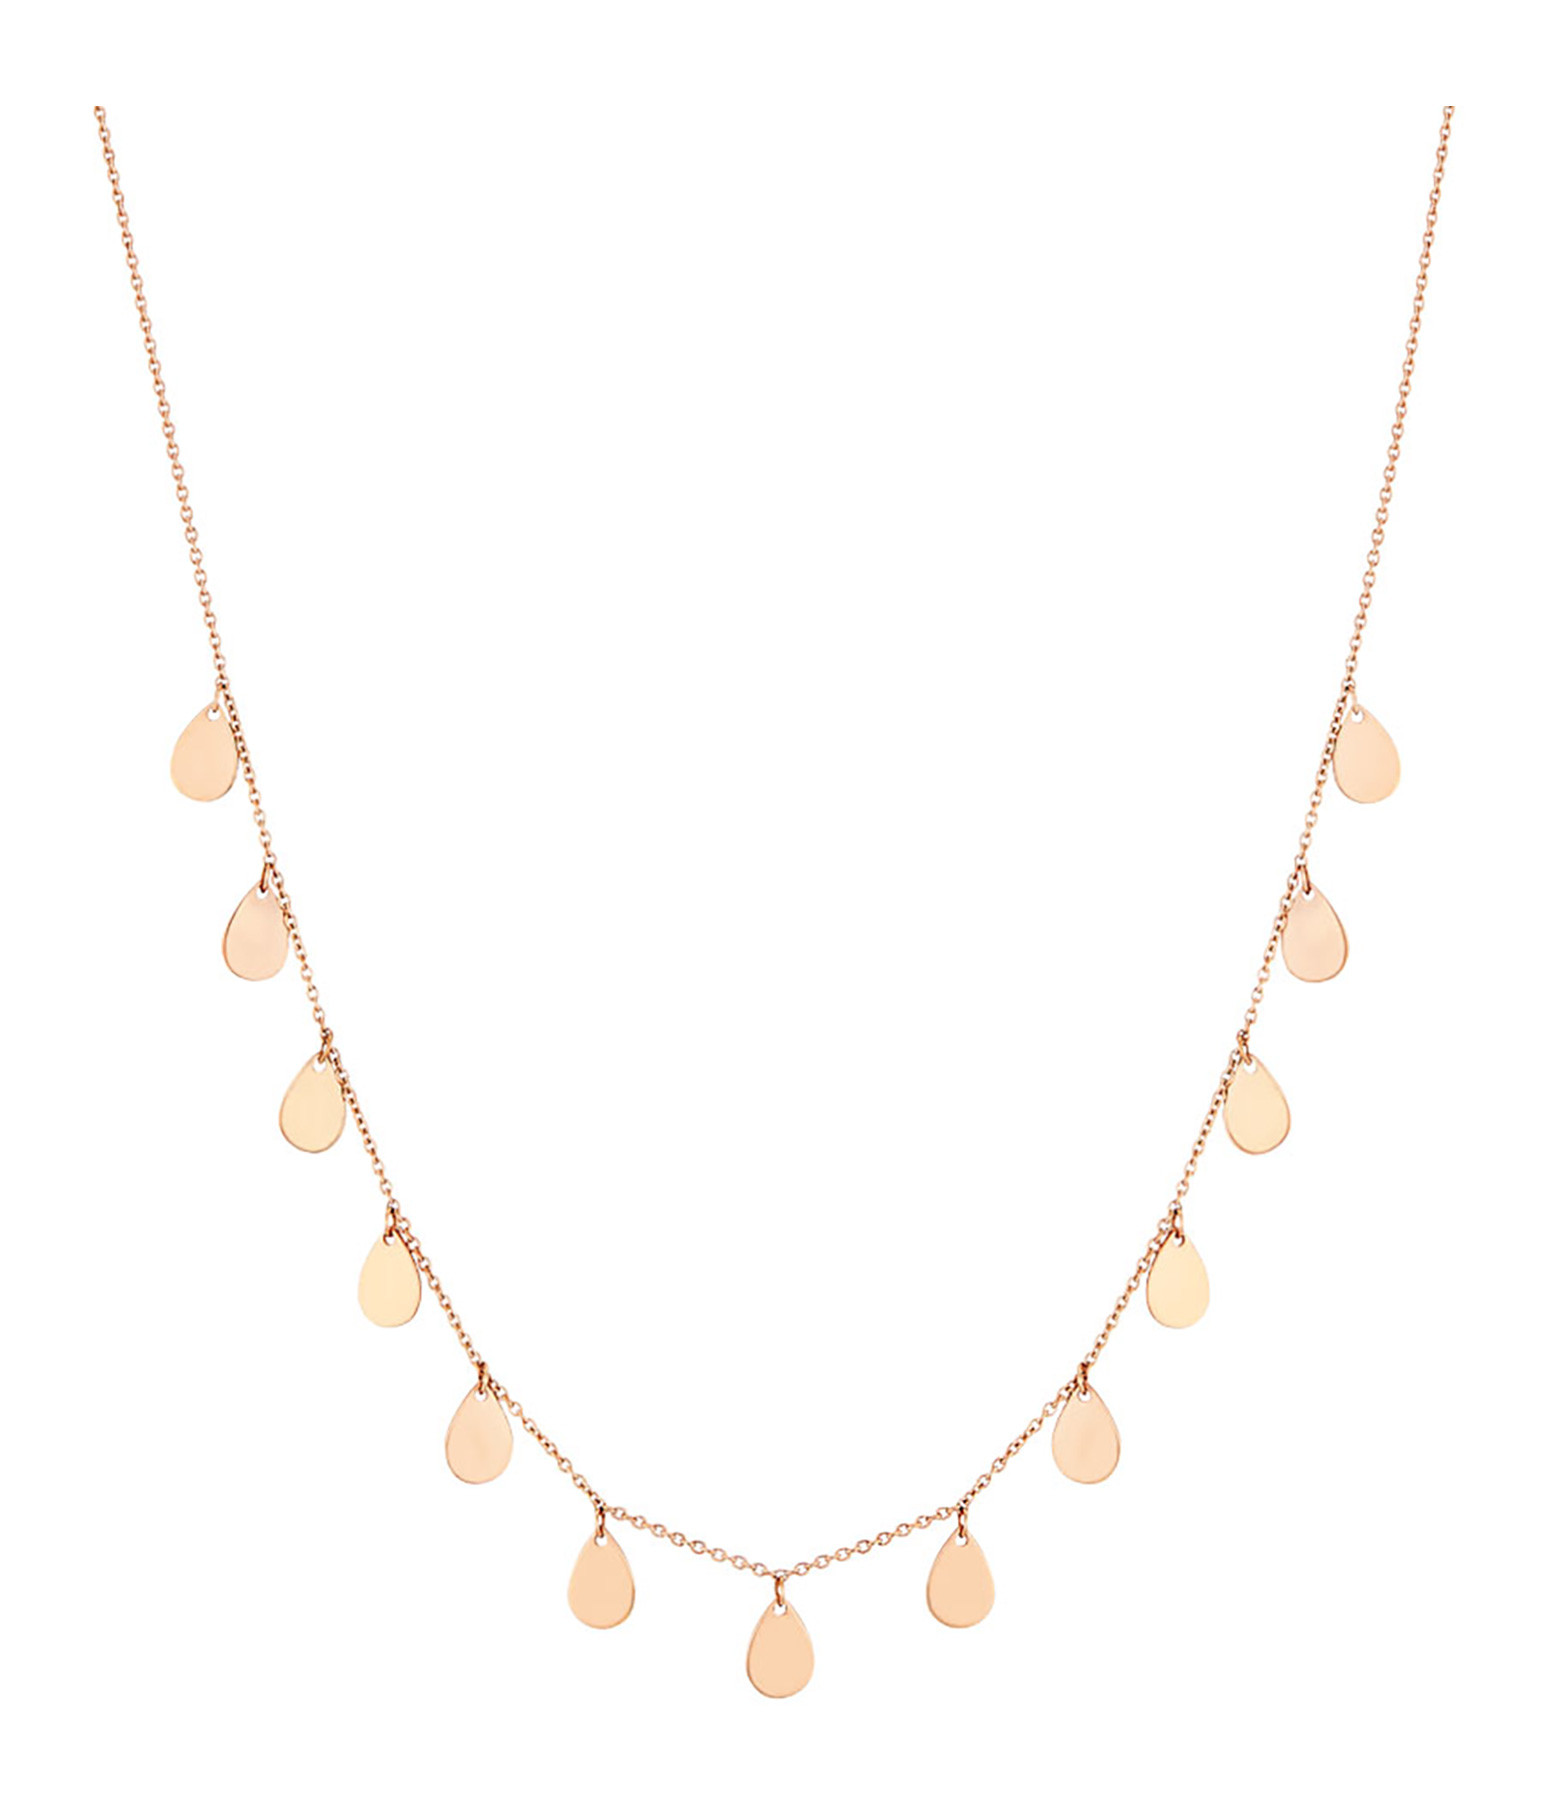 GINETTE NY - Collier Tiny 13 Bliss Or Rose